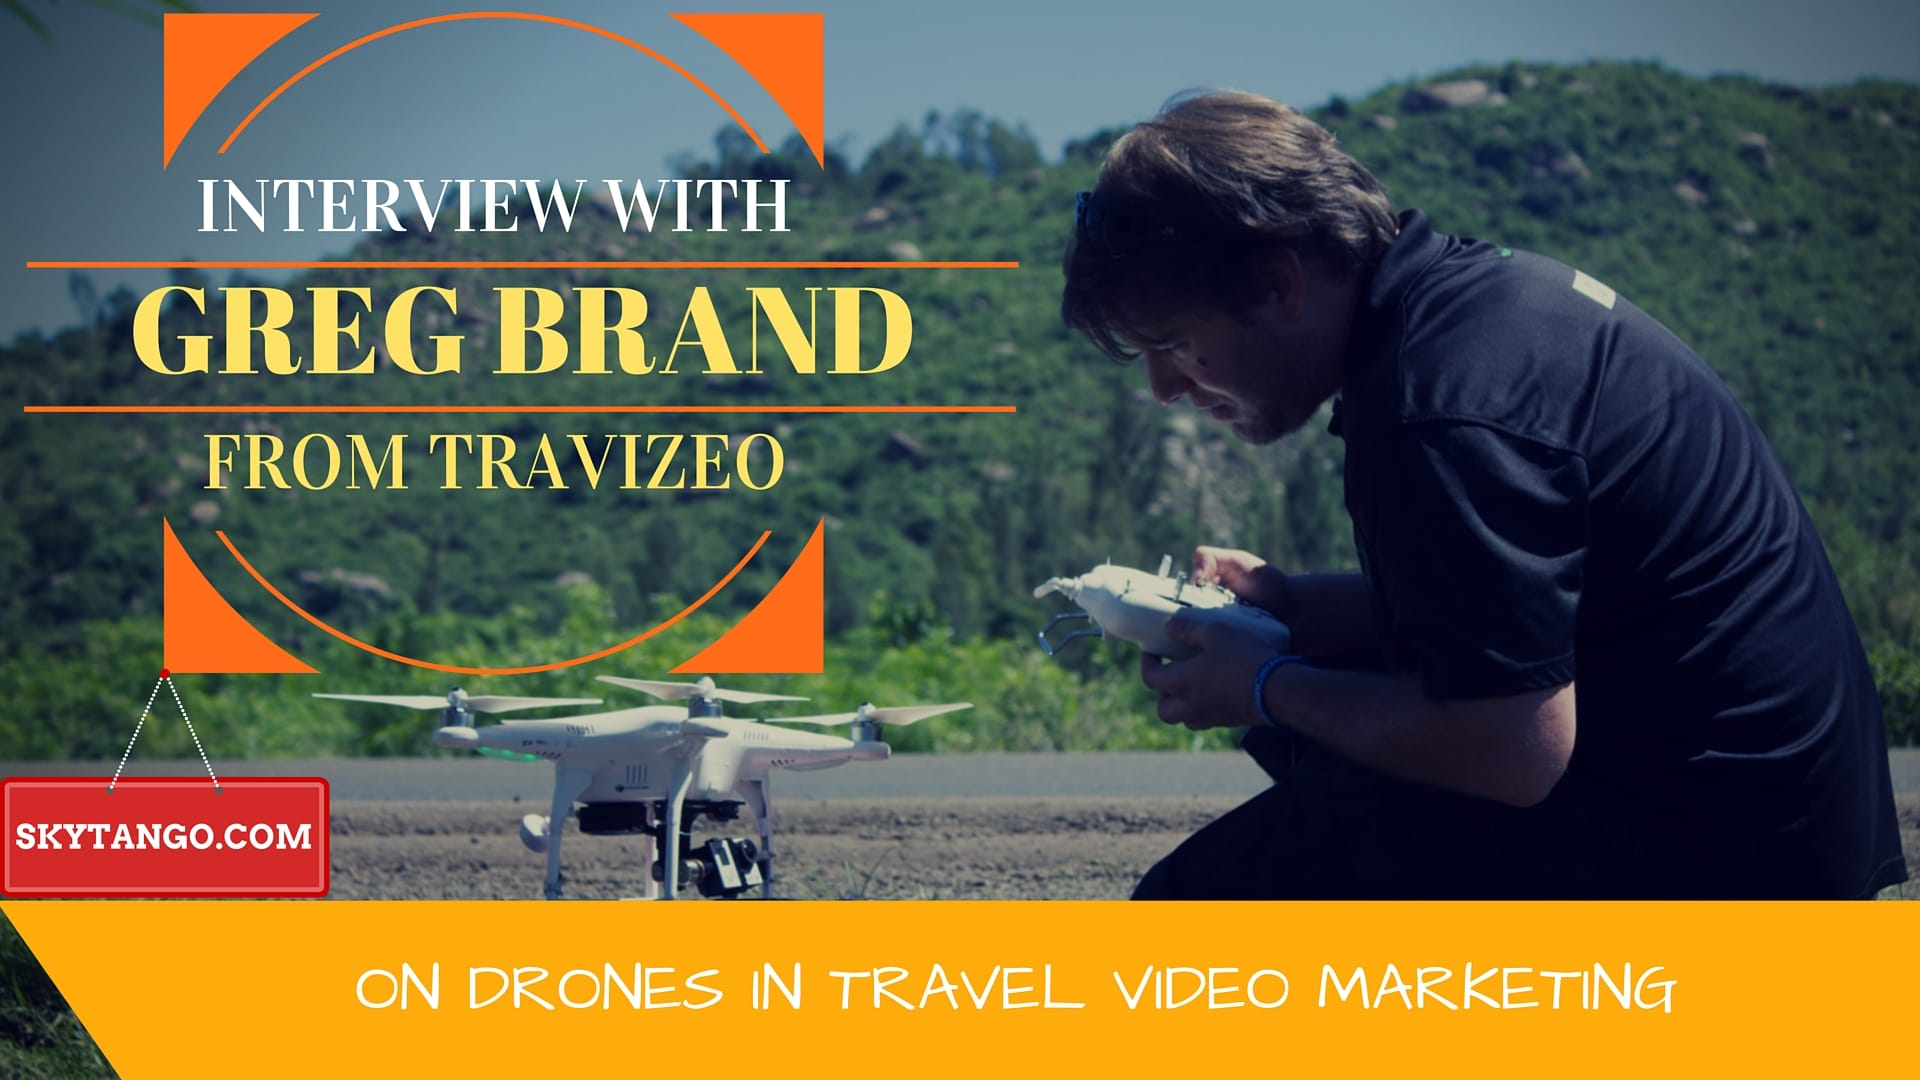 Drones In Travel Video Marketing: Interview With Greg Brand From Travizeo